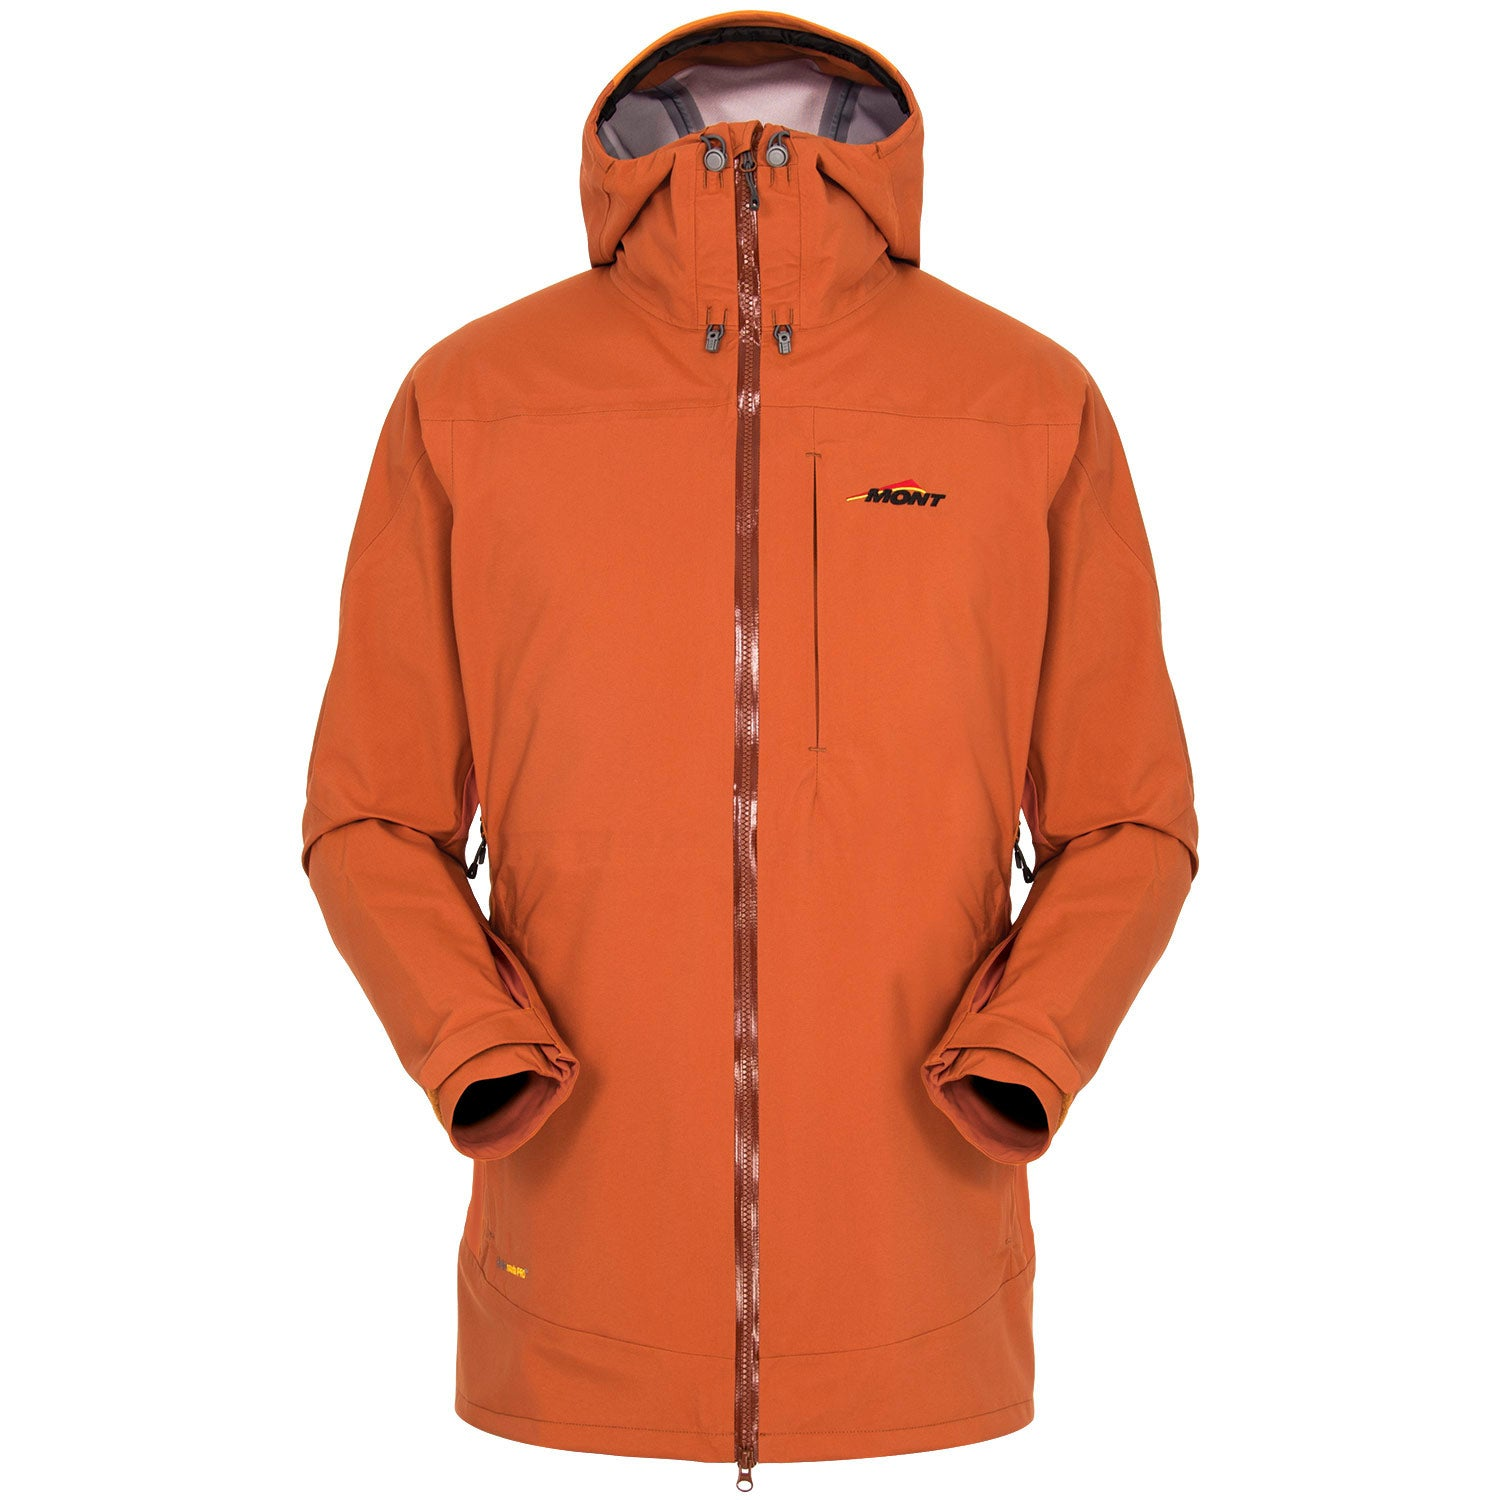 Comparing the differences in Odyssey, Tempest & Austral/Siena Jackets